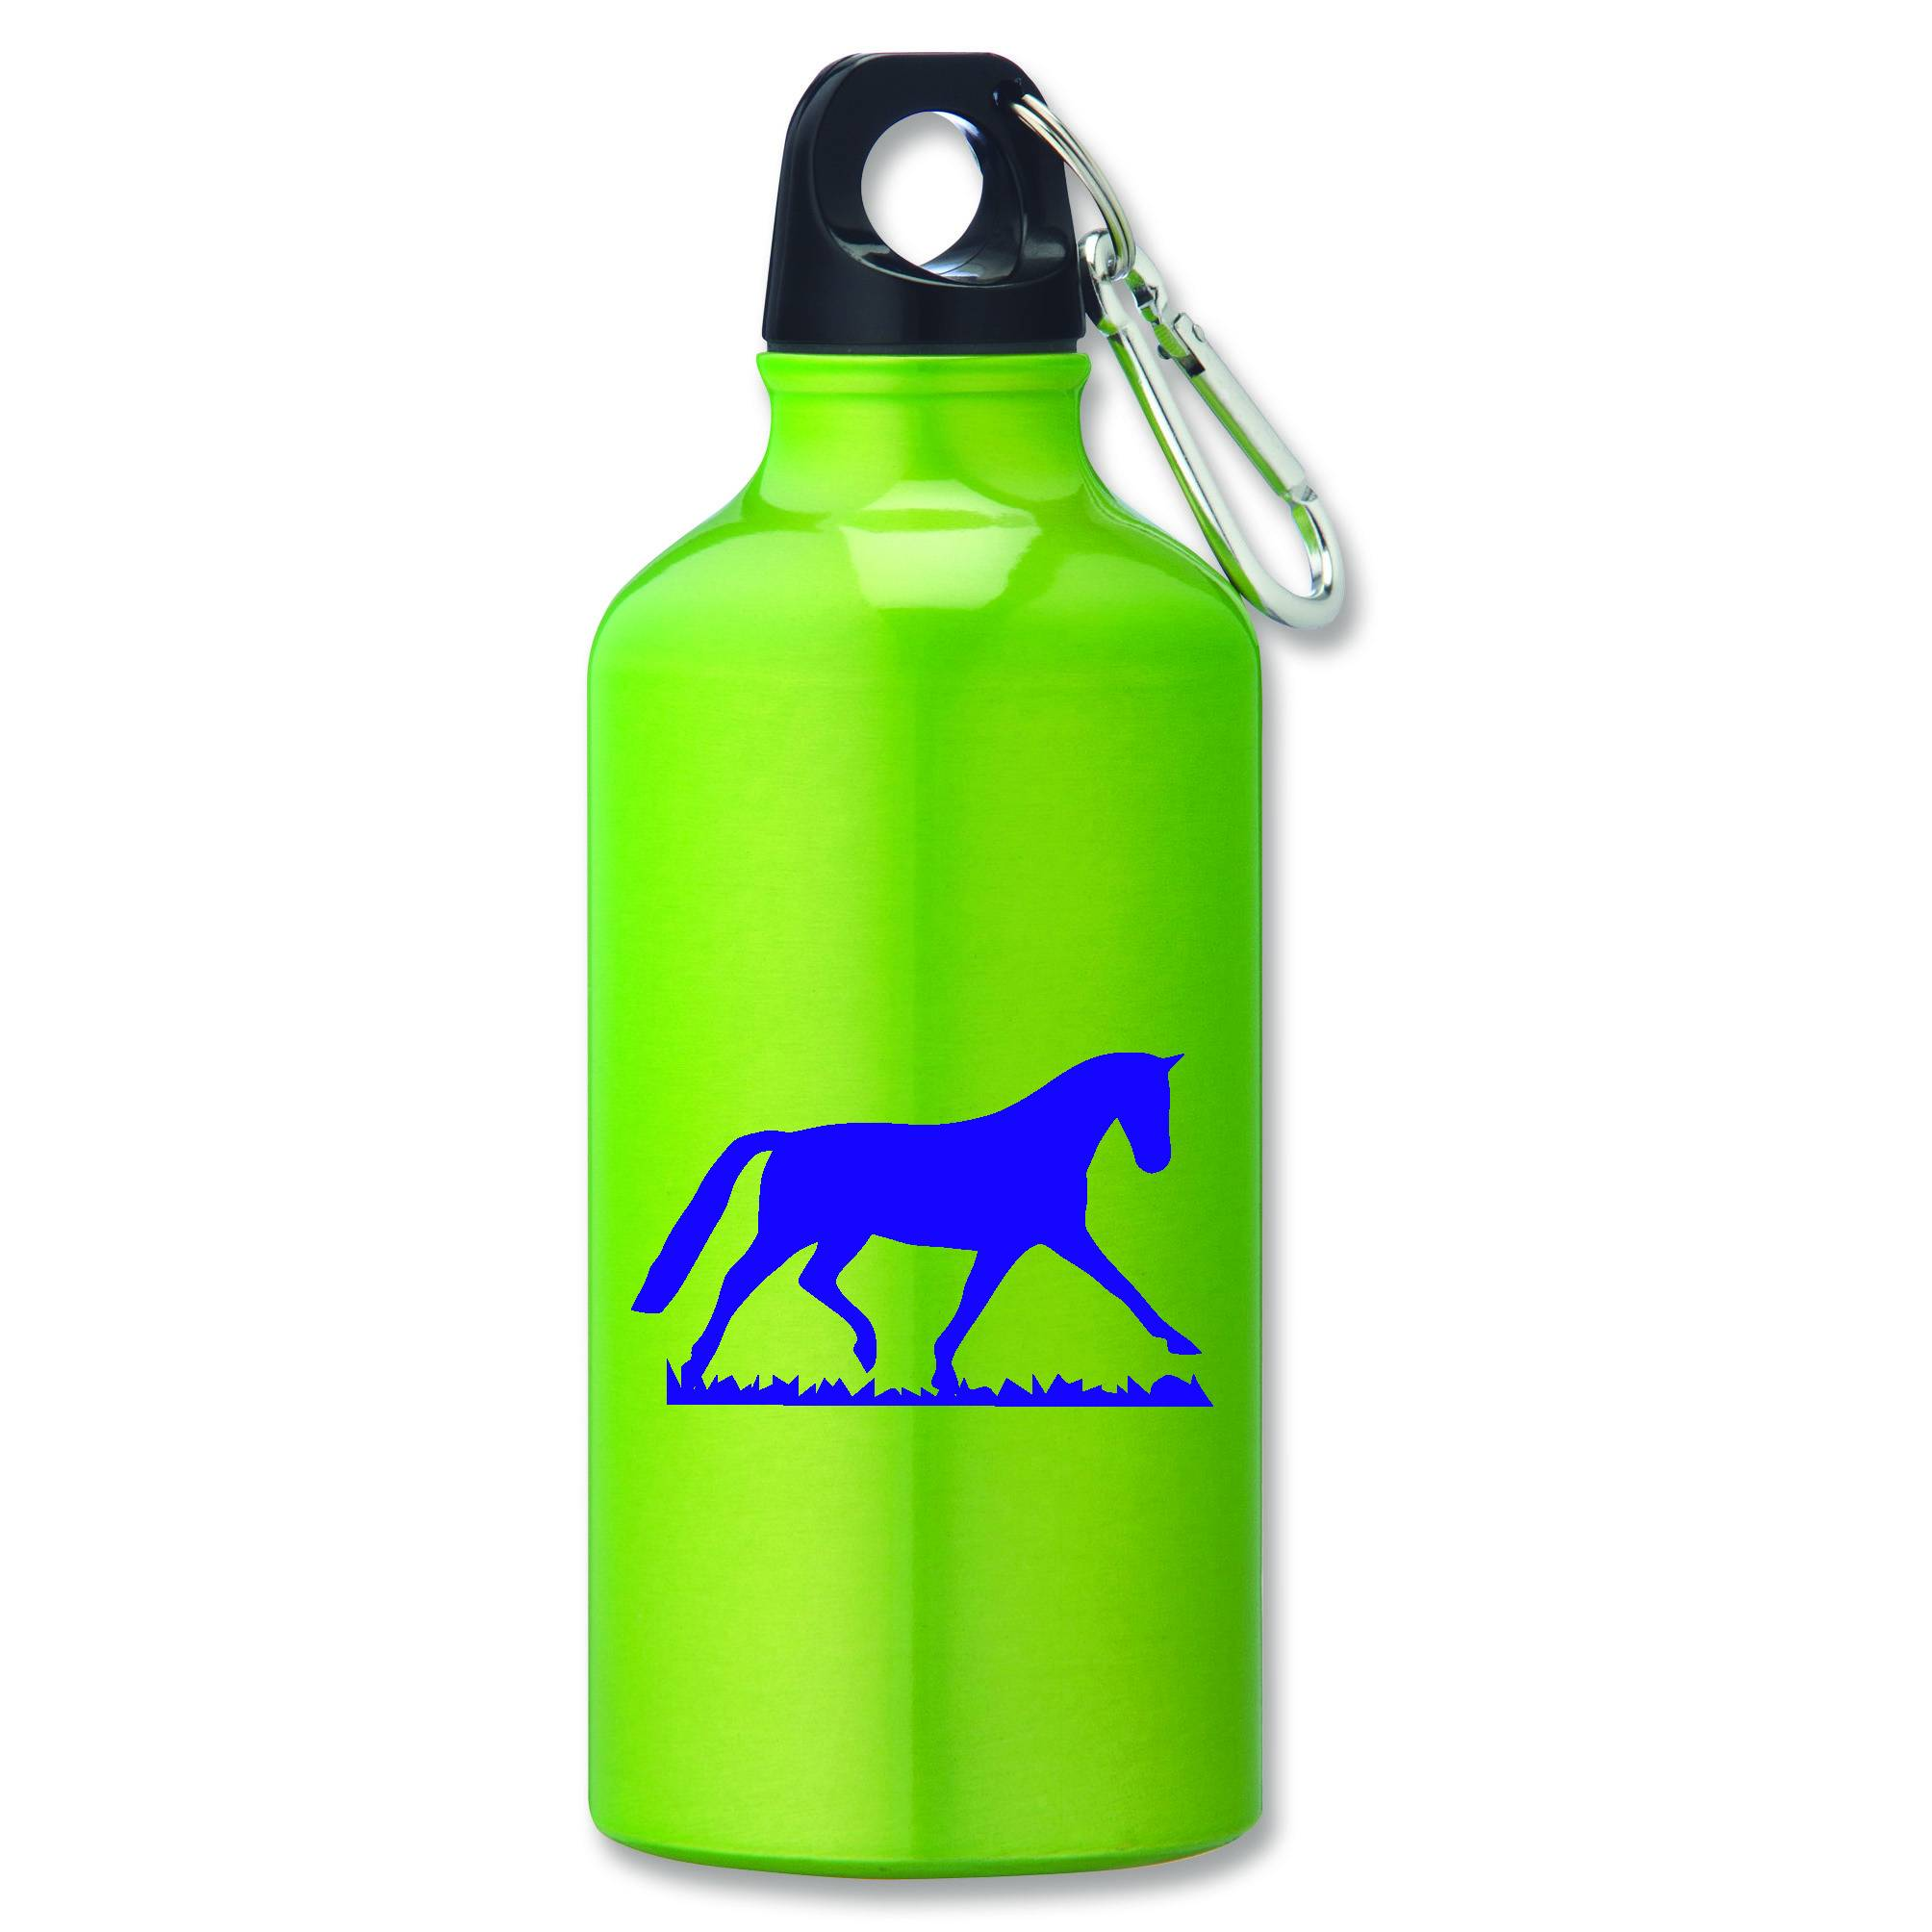 Kelley Aluminum Sport Bottle-17 oz